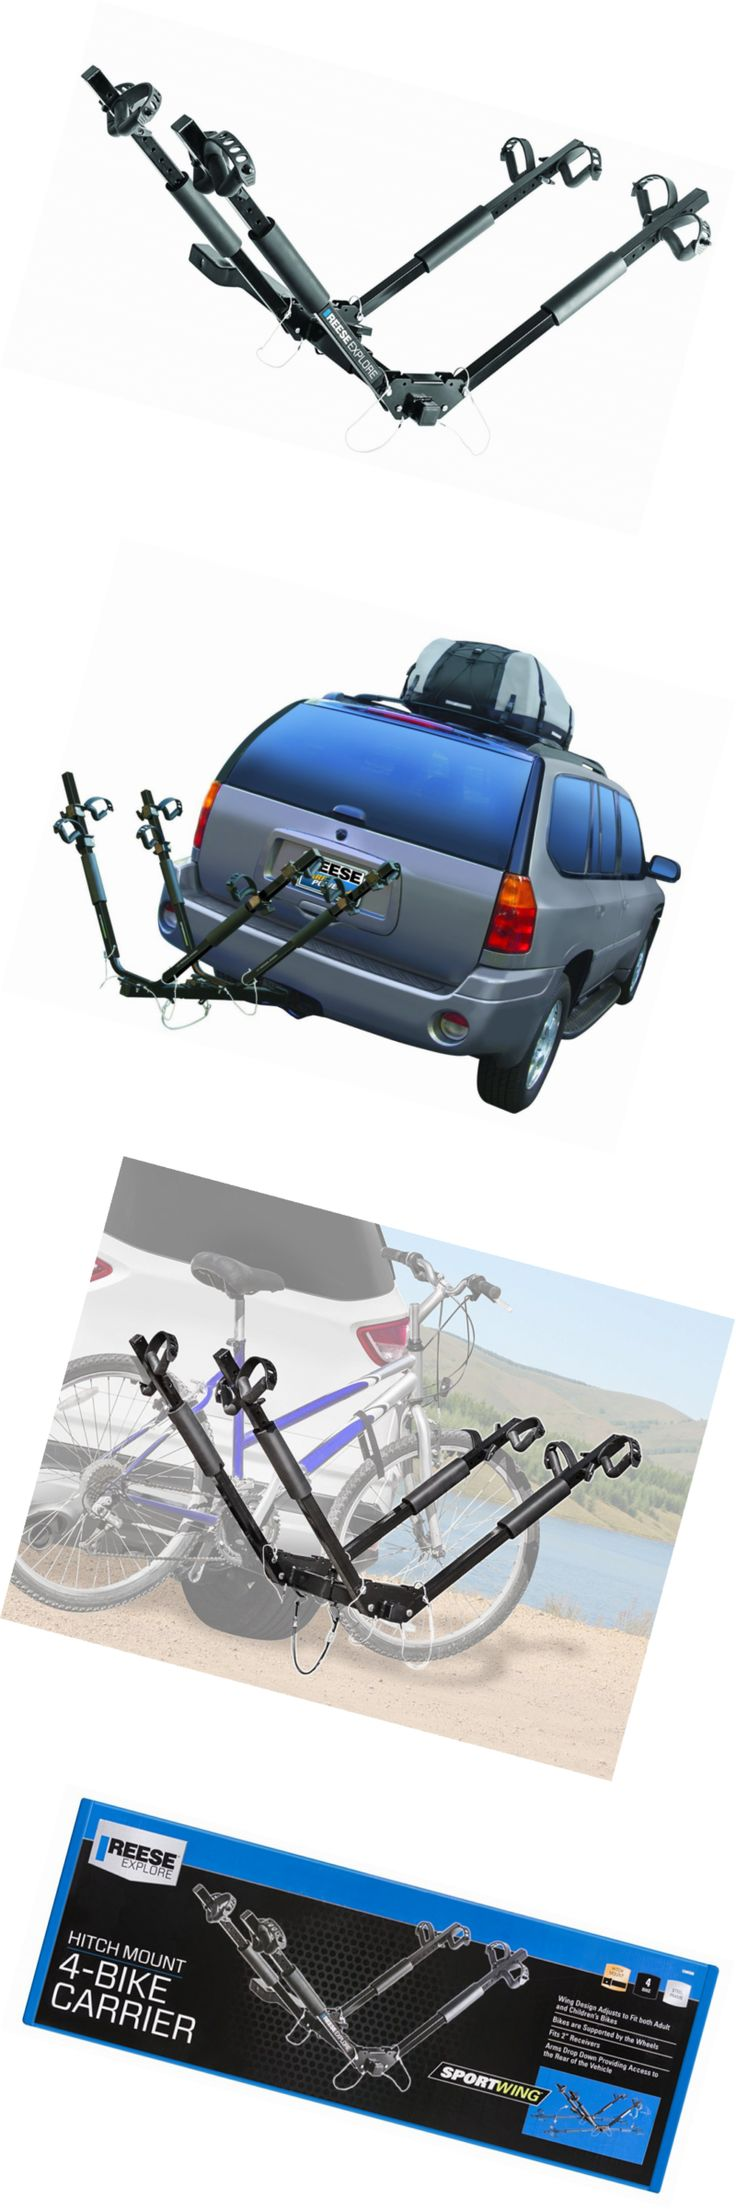 Car and Truck Racks 177849: Reese Explore 1390500 Hitch Mount Sportwing 4-Bike Carrier -> BUY IT NOW ONLY: $127.55 on eBay!